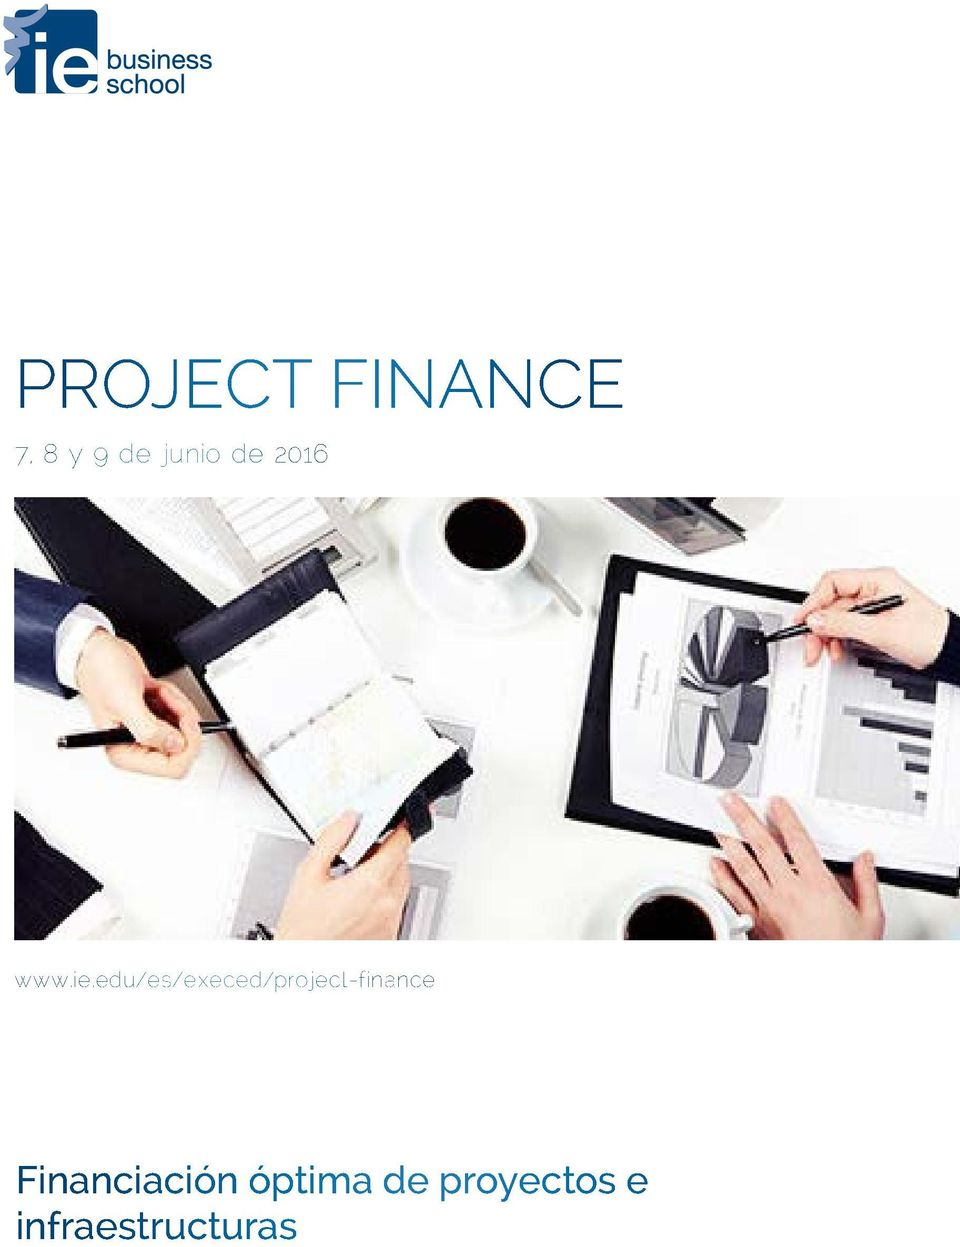 edu/es/execed/project-finance